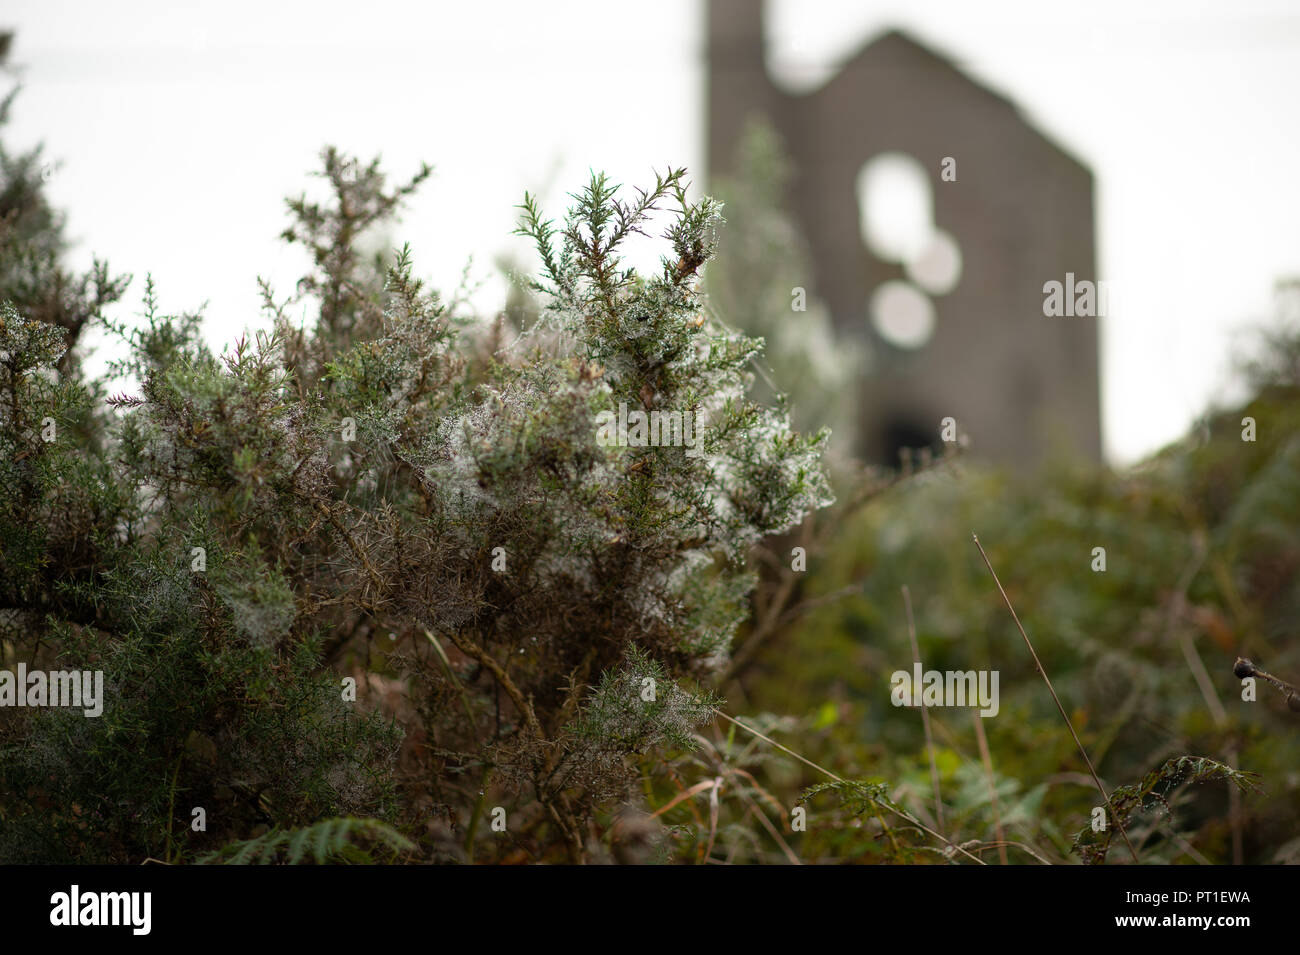 Branches of prickly gorse covered in many spiders' webs holding the droplets of recent rain against a dull sky and soft focus Cornish Tin Mine. - Stock Image